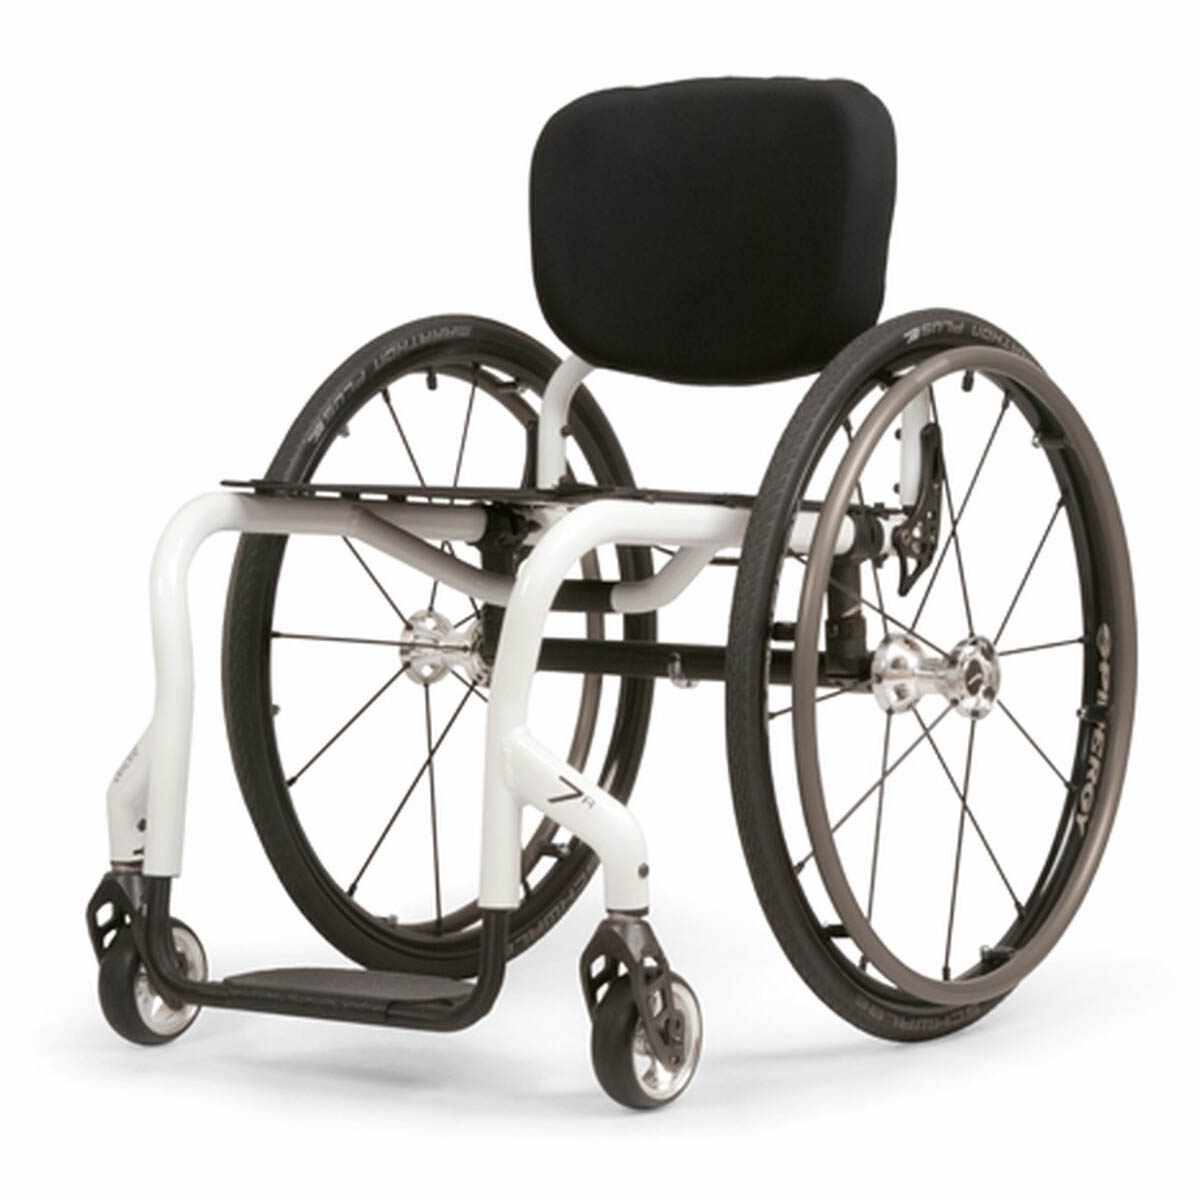 Quickie 7R rigid ultralight manual wheelchair